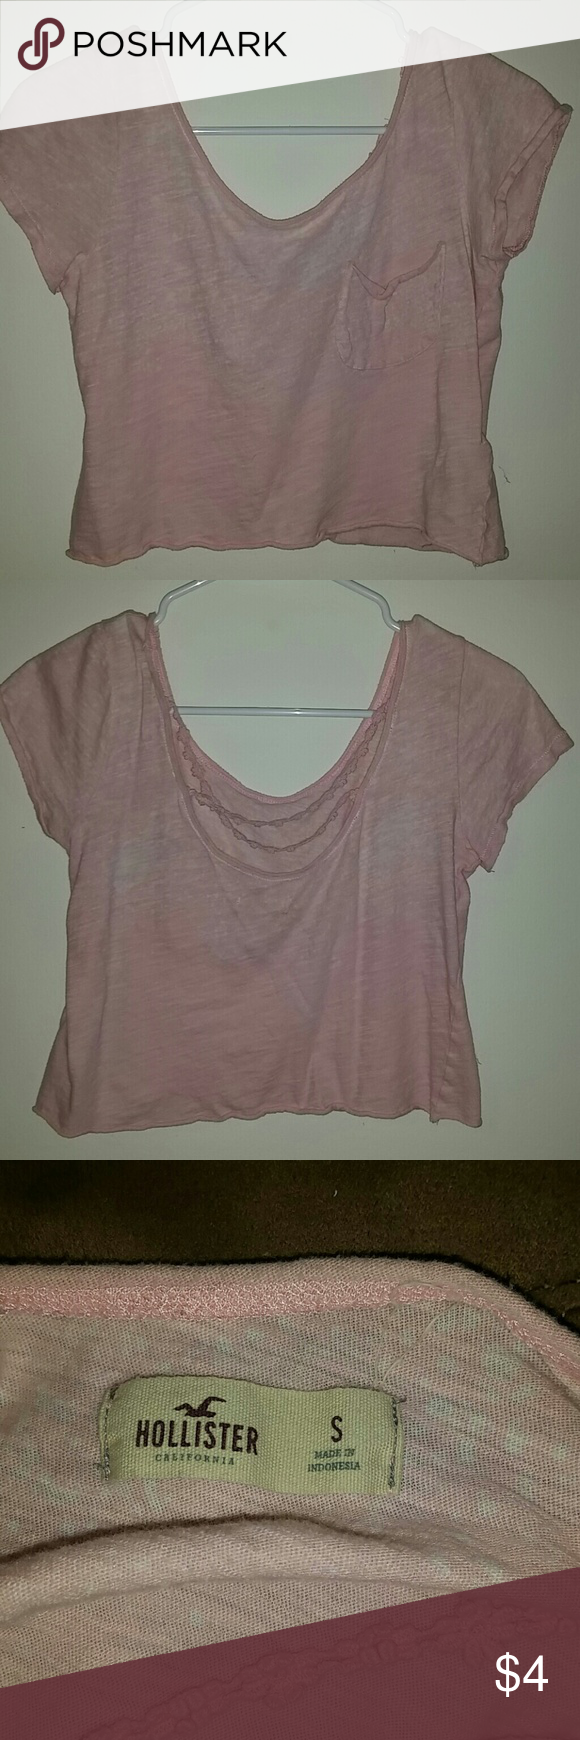 Hollister Faded Pink Crop Top Shirt has a faded pink look to it, also back floral design. One front pocket.  Size Small Hollister Tops Crop Tops